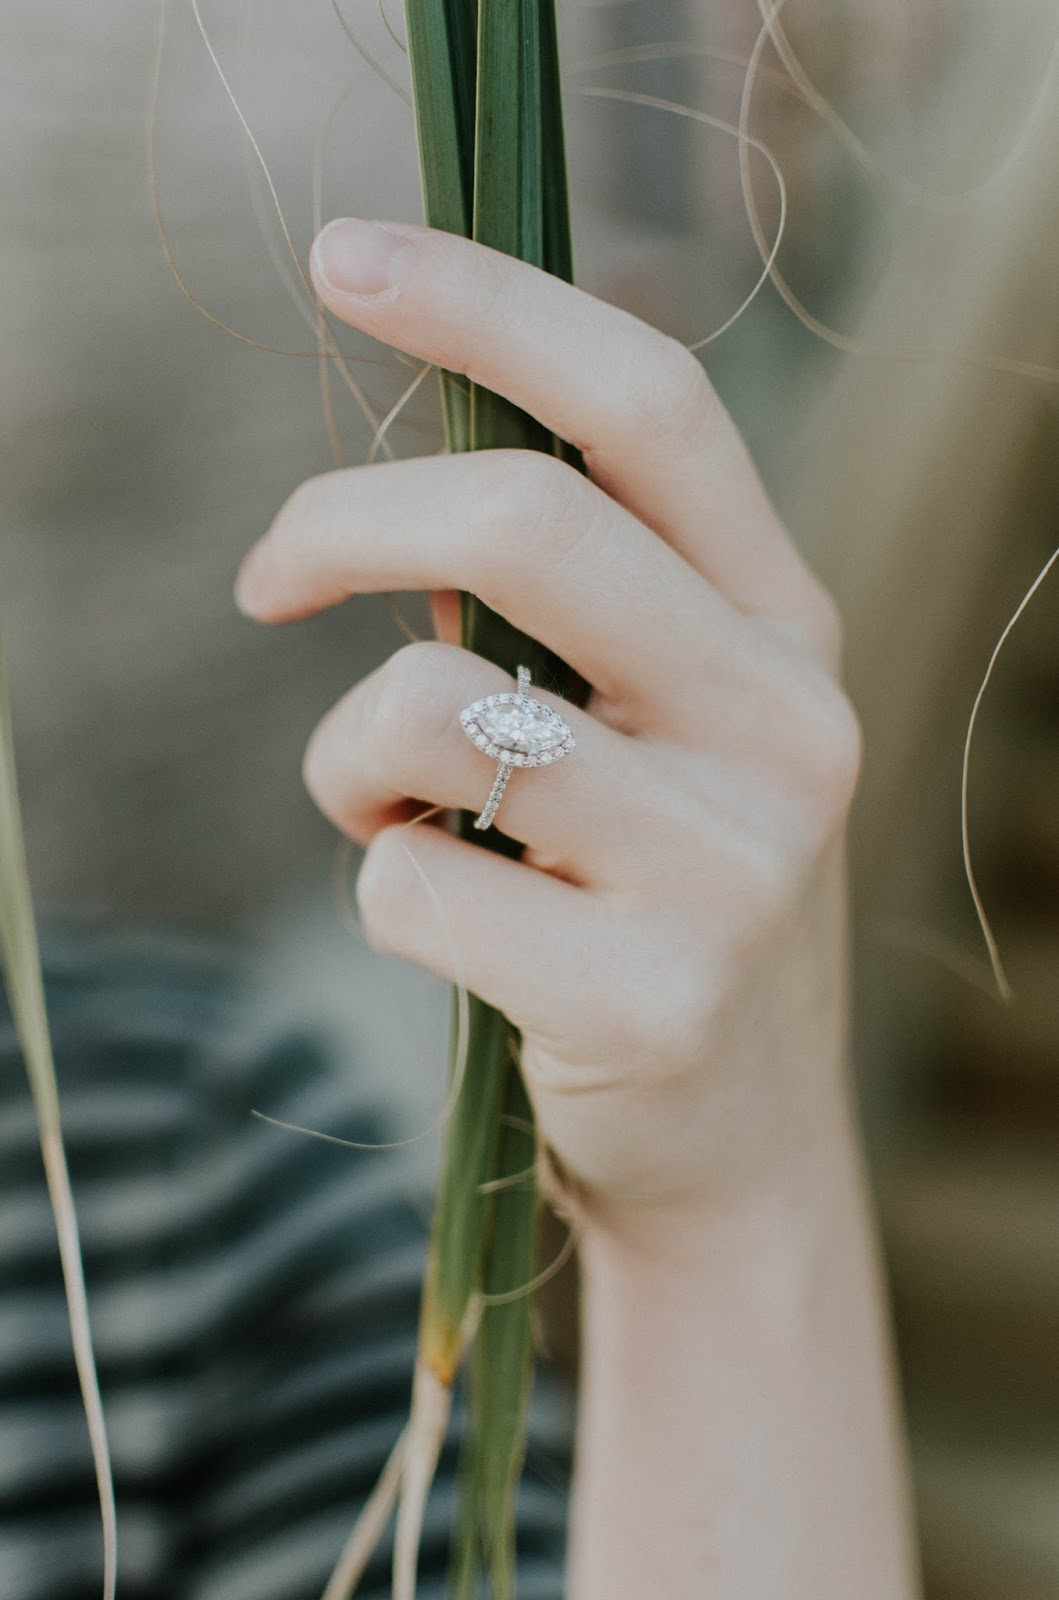 The-Do's-and-Don'ts-of-Caring-For-Your-White-Gold-Engagement-Ring